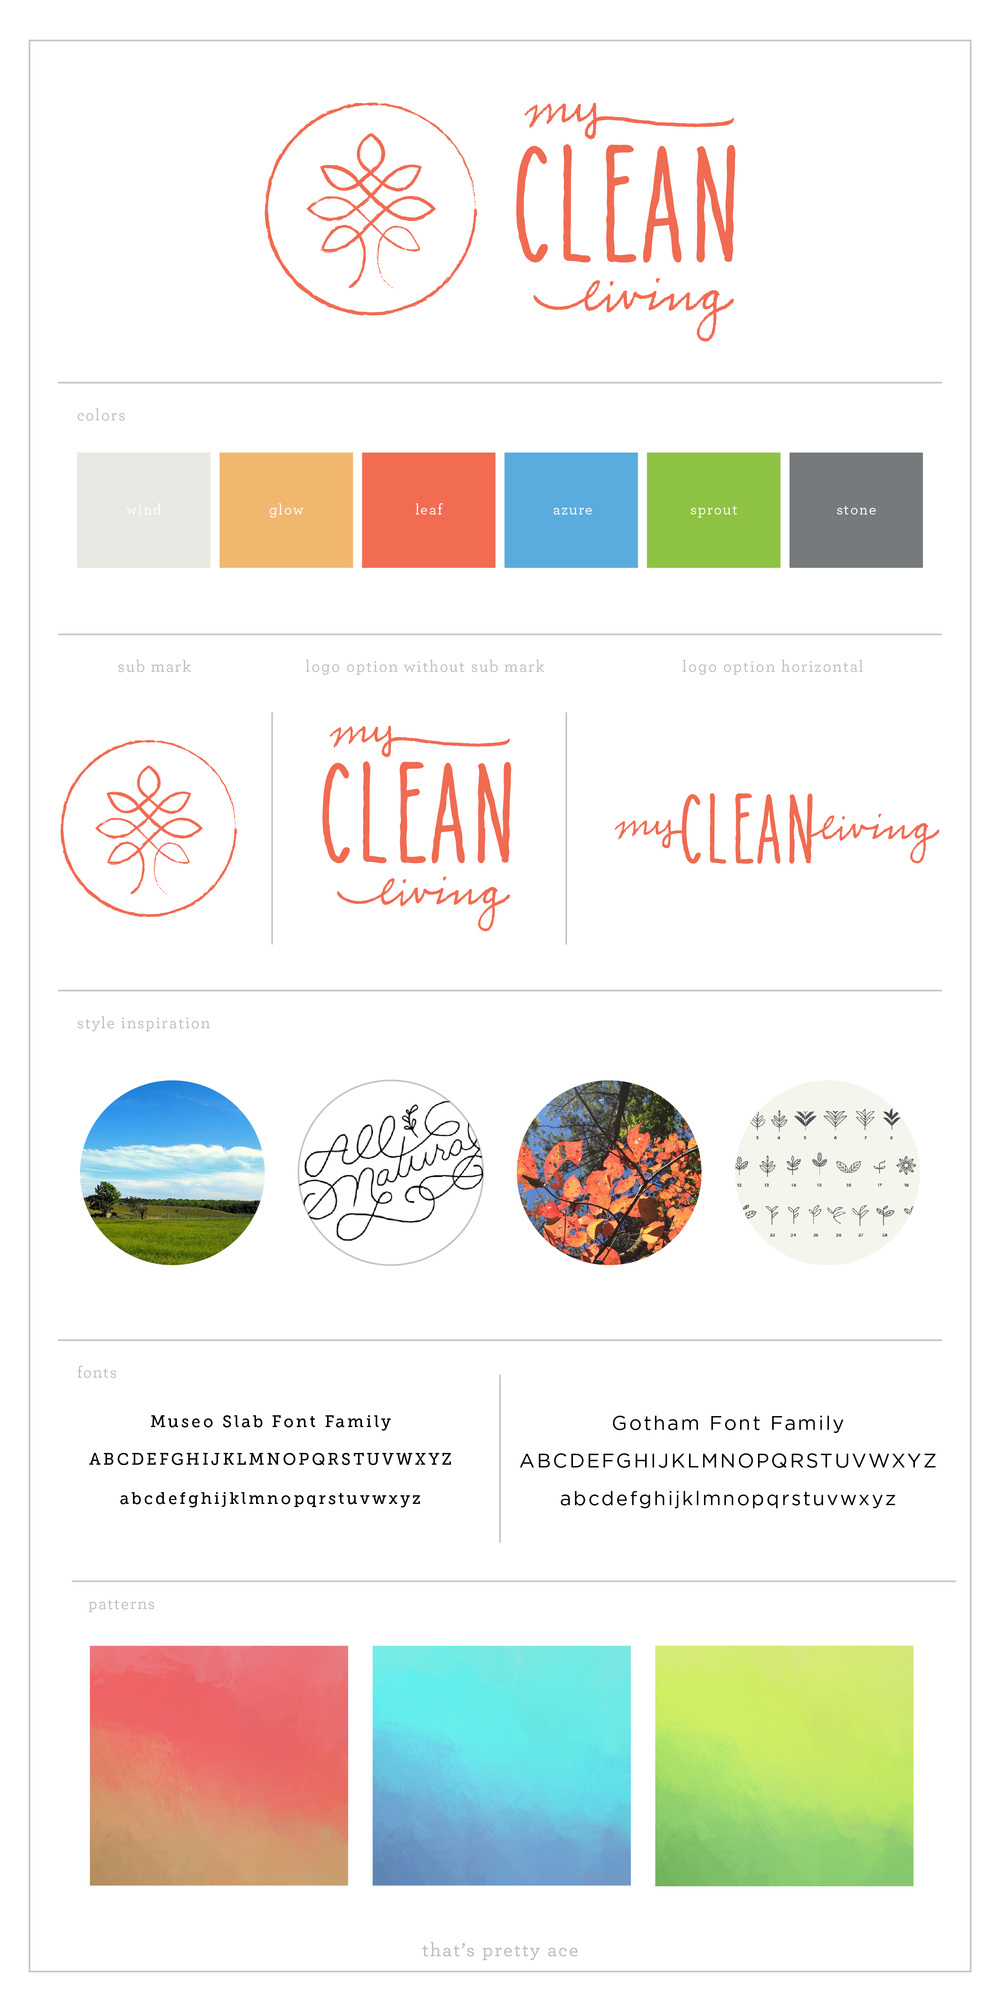 my clean living brand elements - that's pretty ace